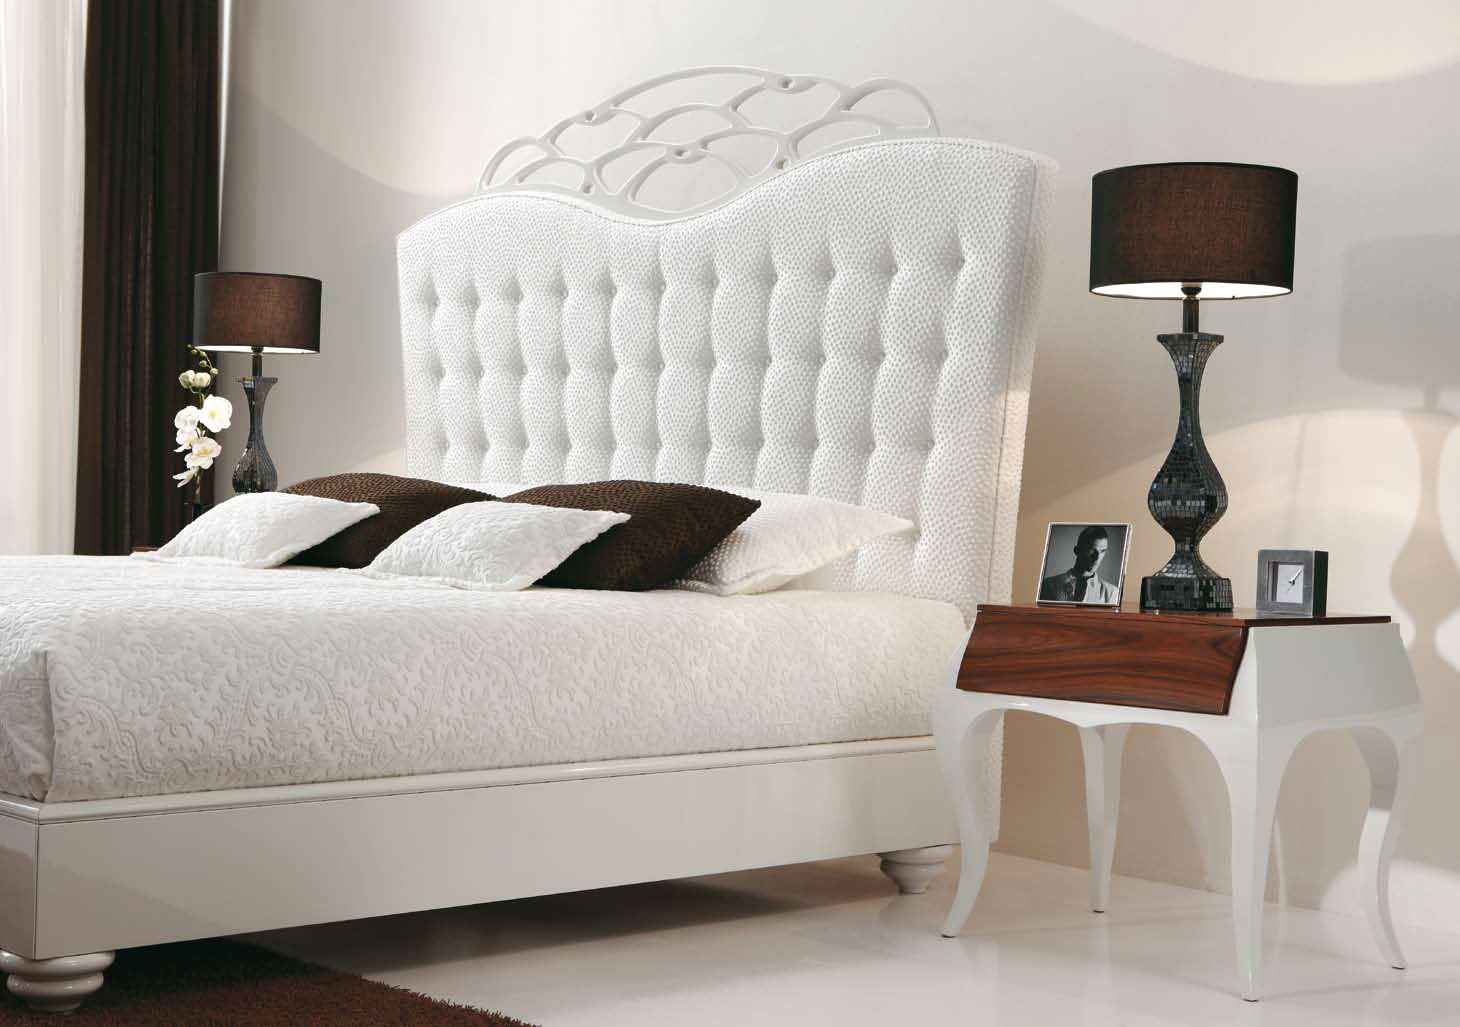 Stunning White Bedrooms with Beds 1460 x 1027 · 118 kB · jpeg